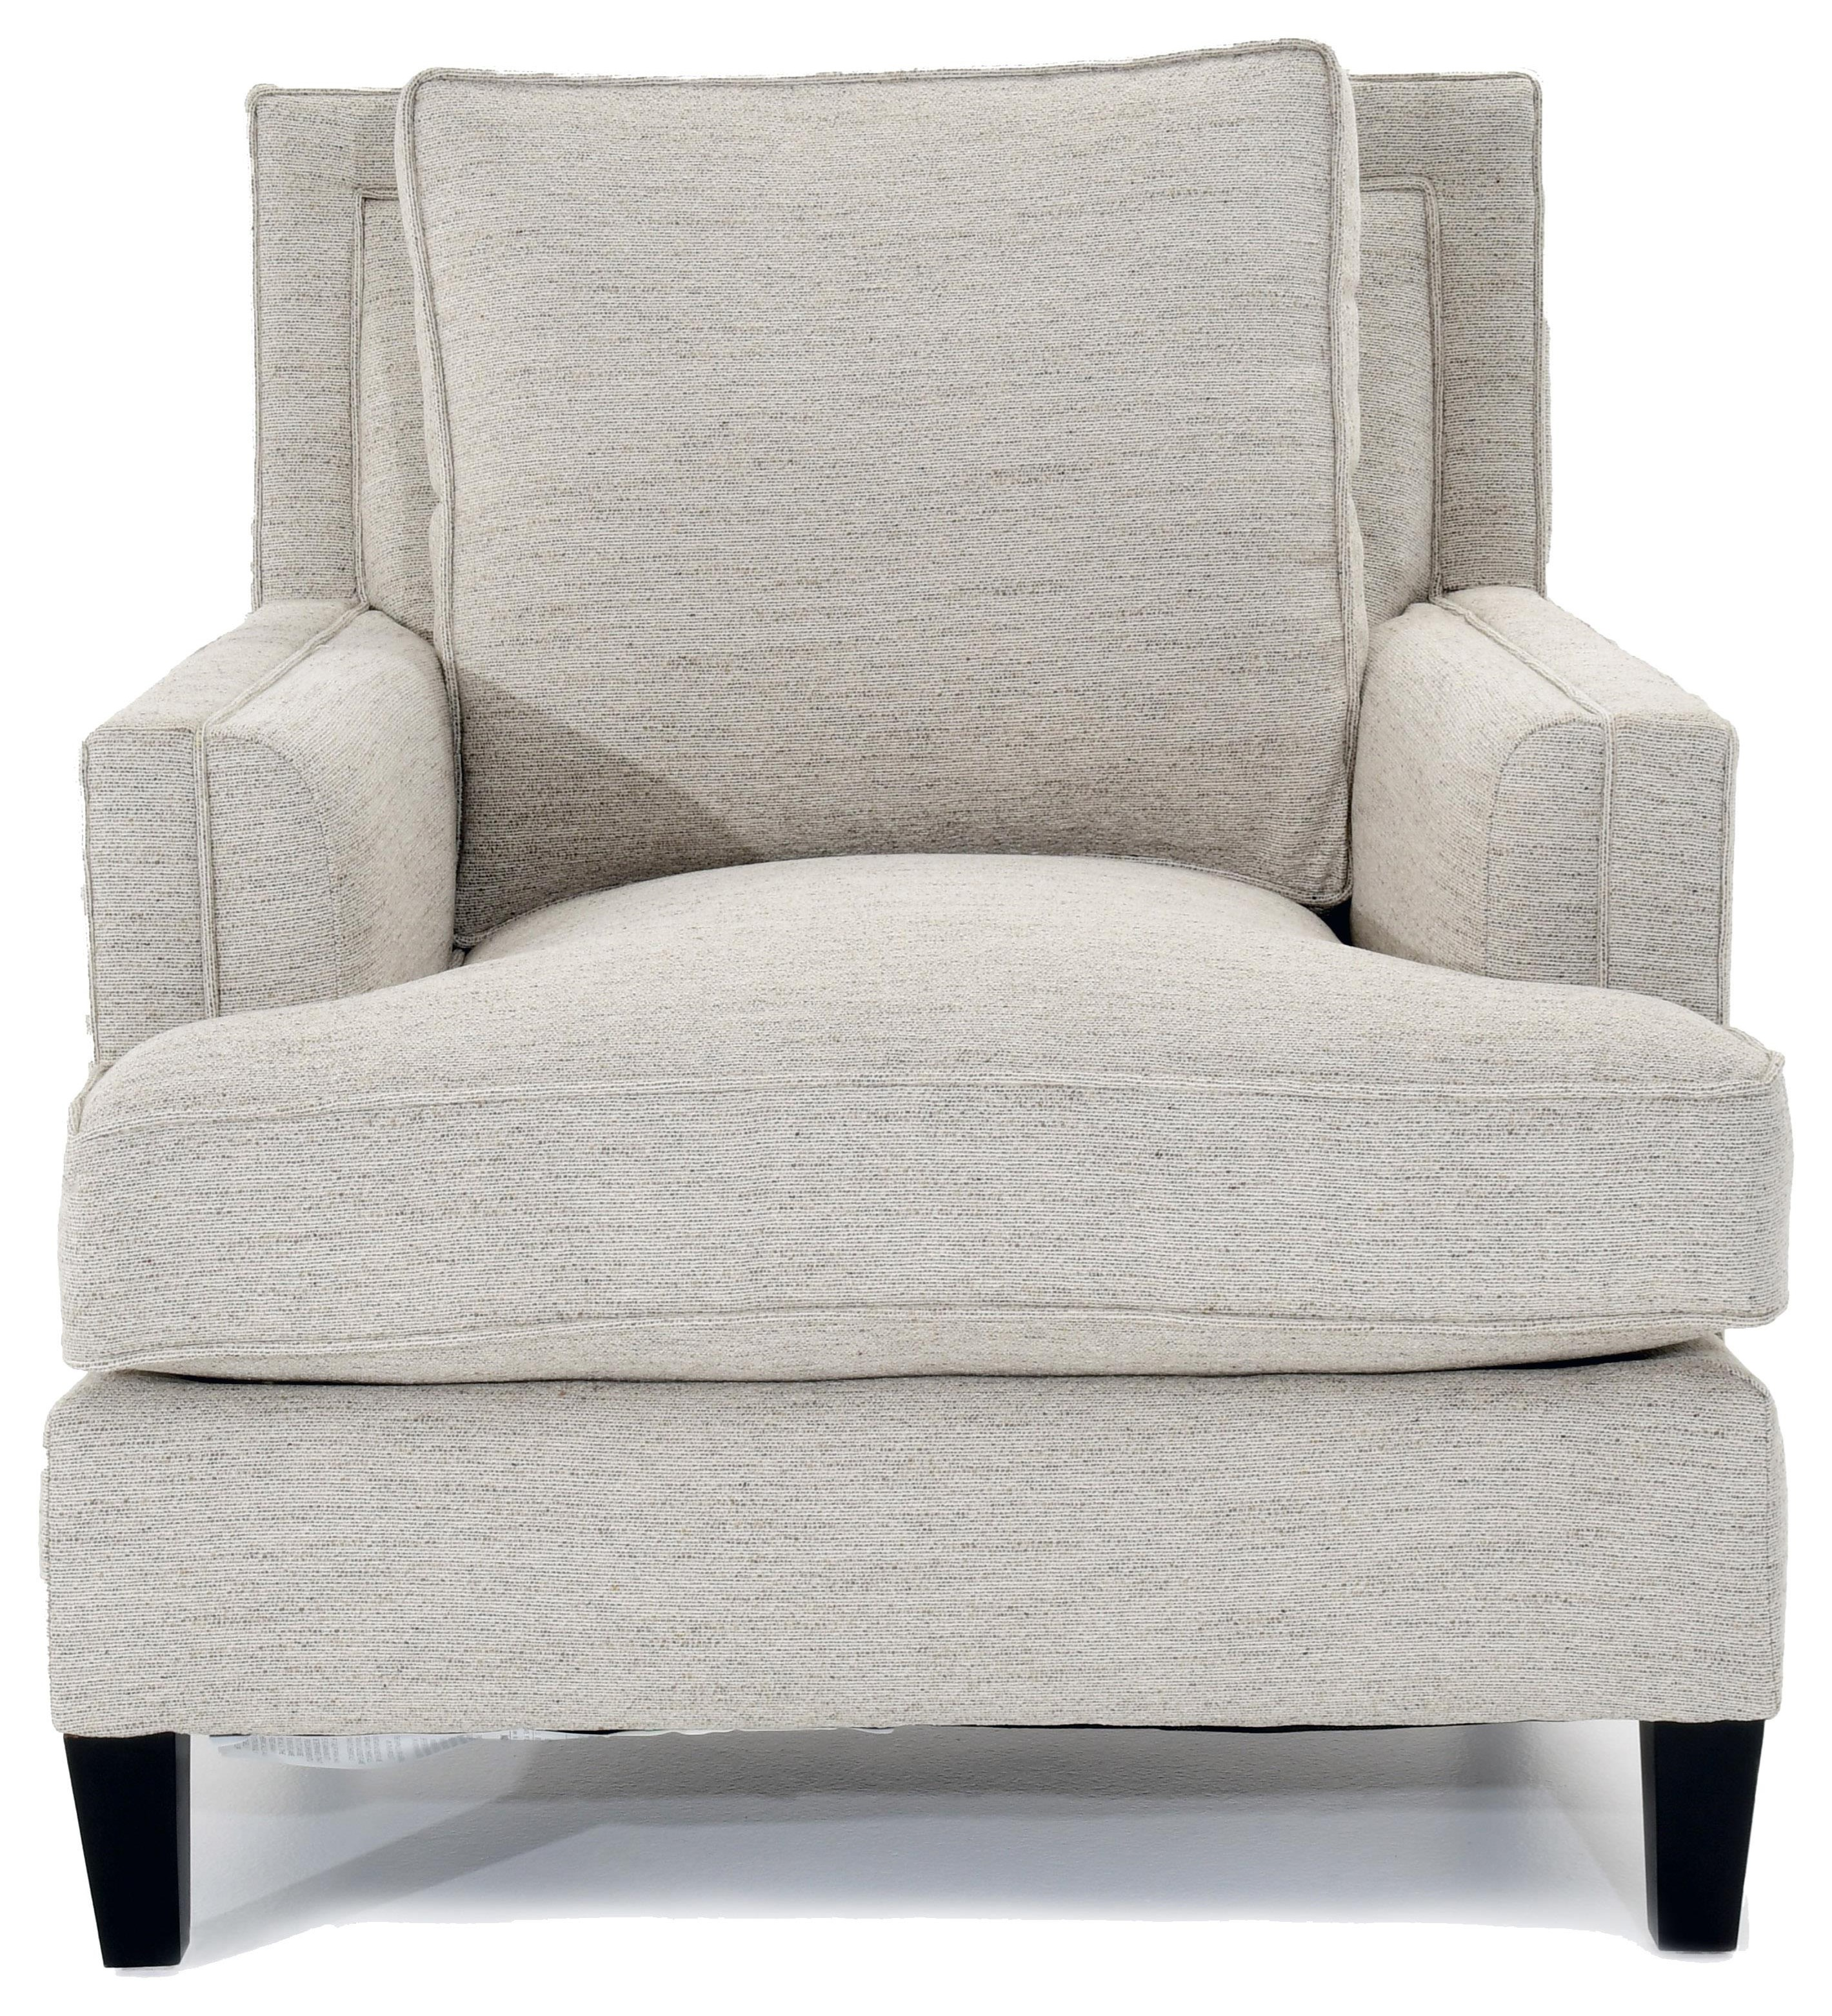 Casual Styled Chair